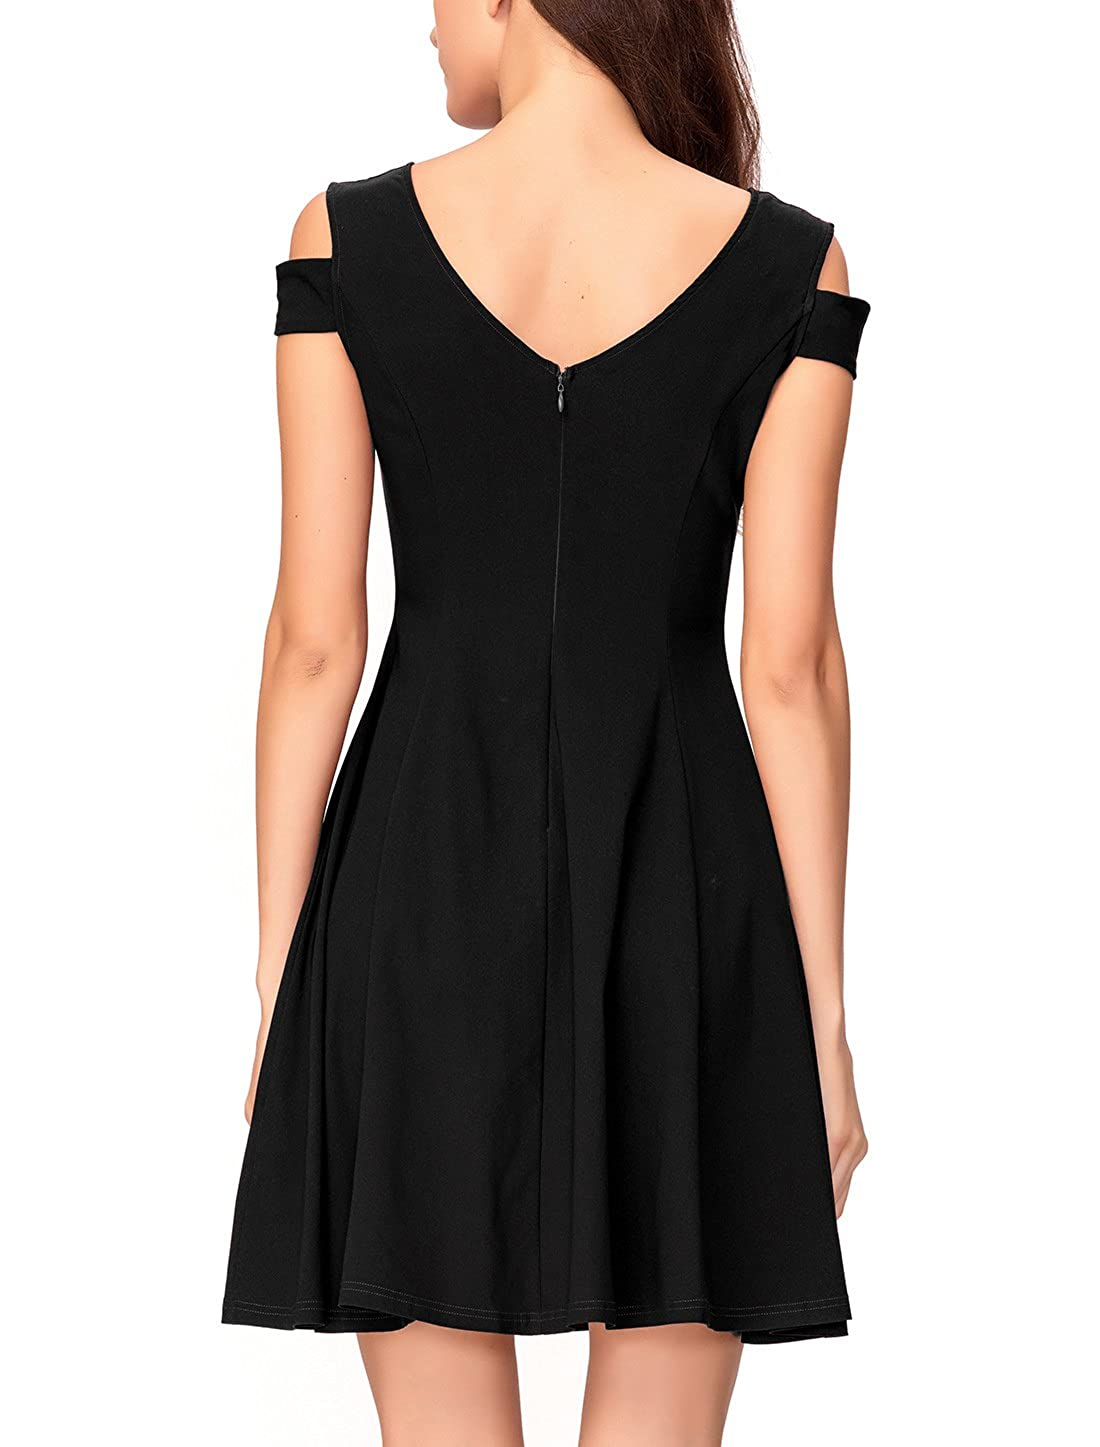 6205fc01bf62 InsNova Women s Cold Shoulder Little Cocktail Party A-line Skater Dress at  Amazon Women s Clothing store